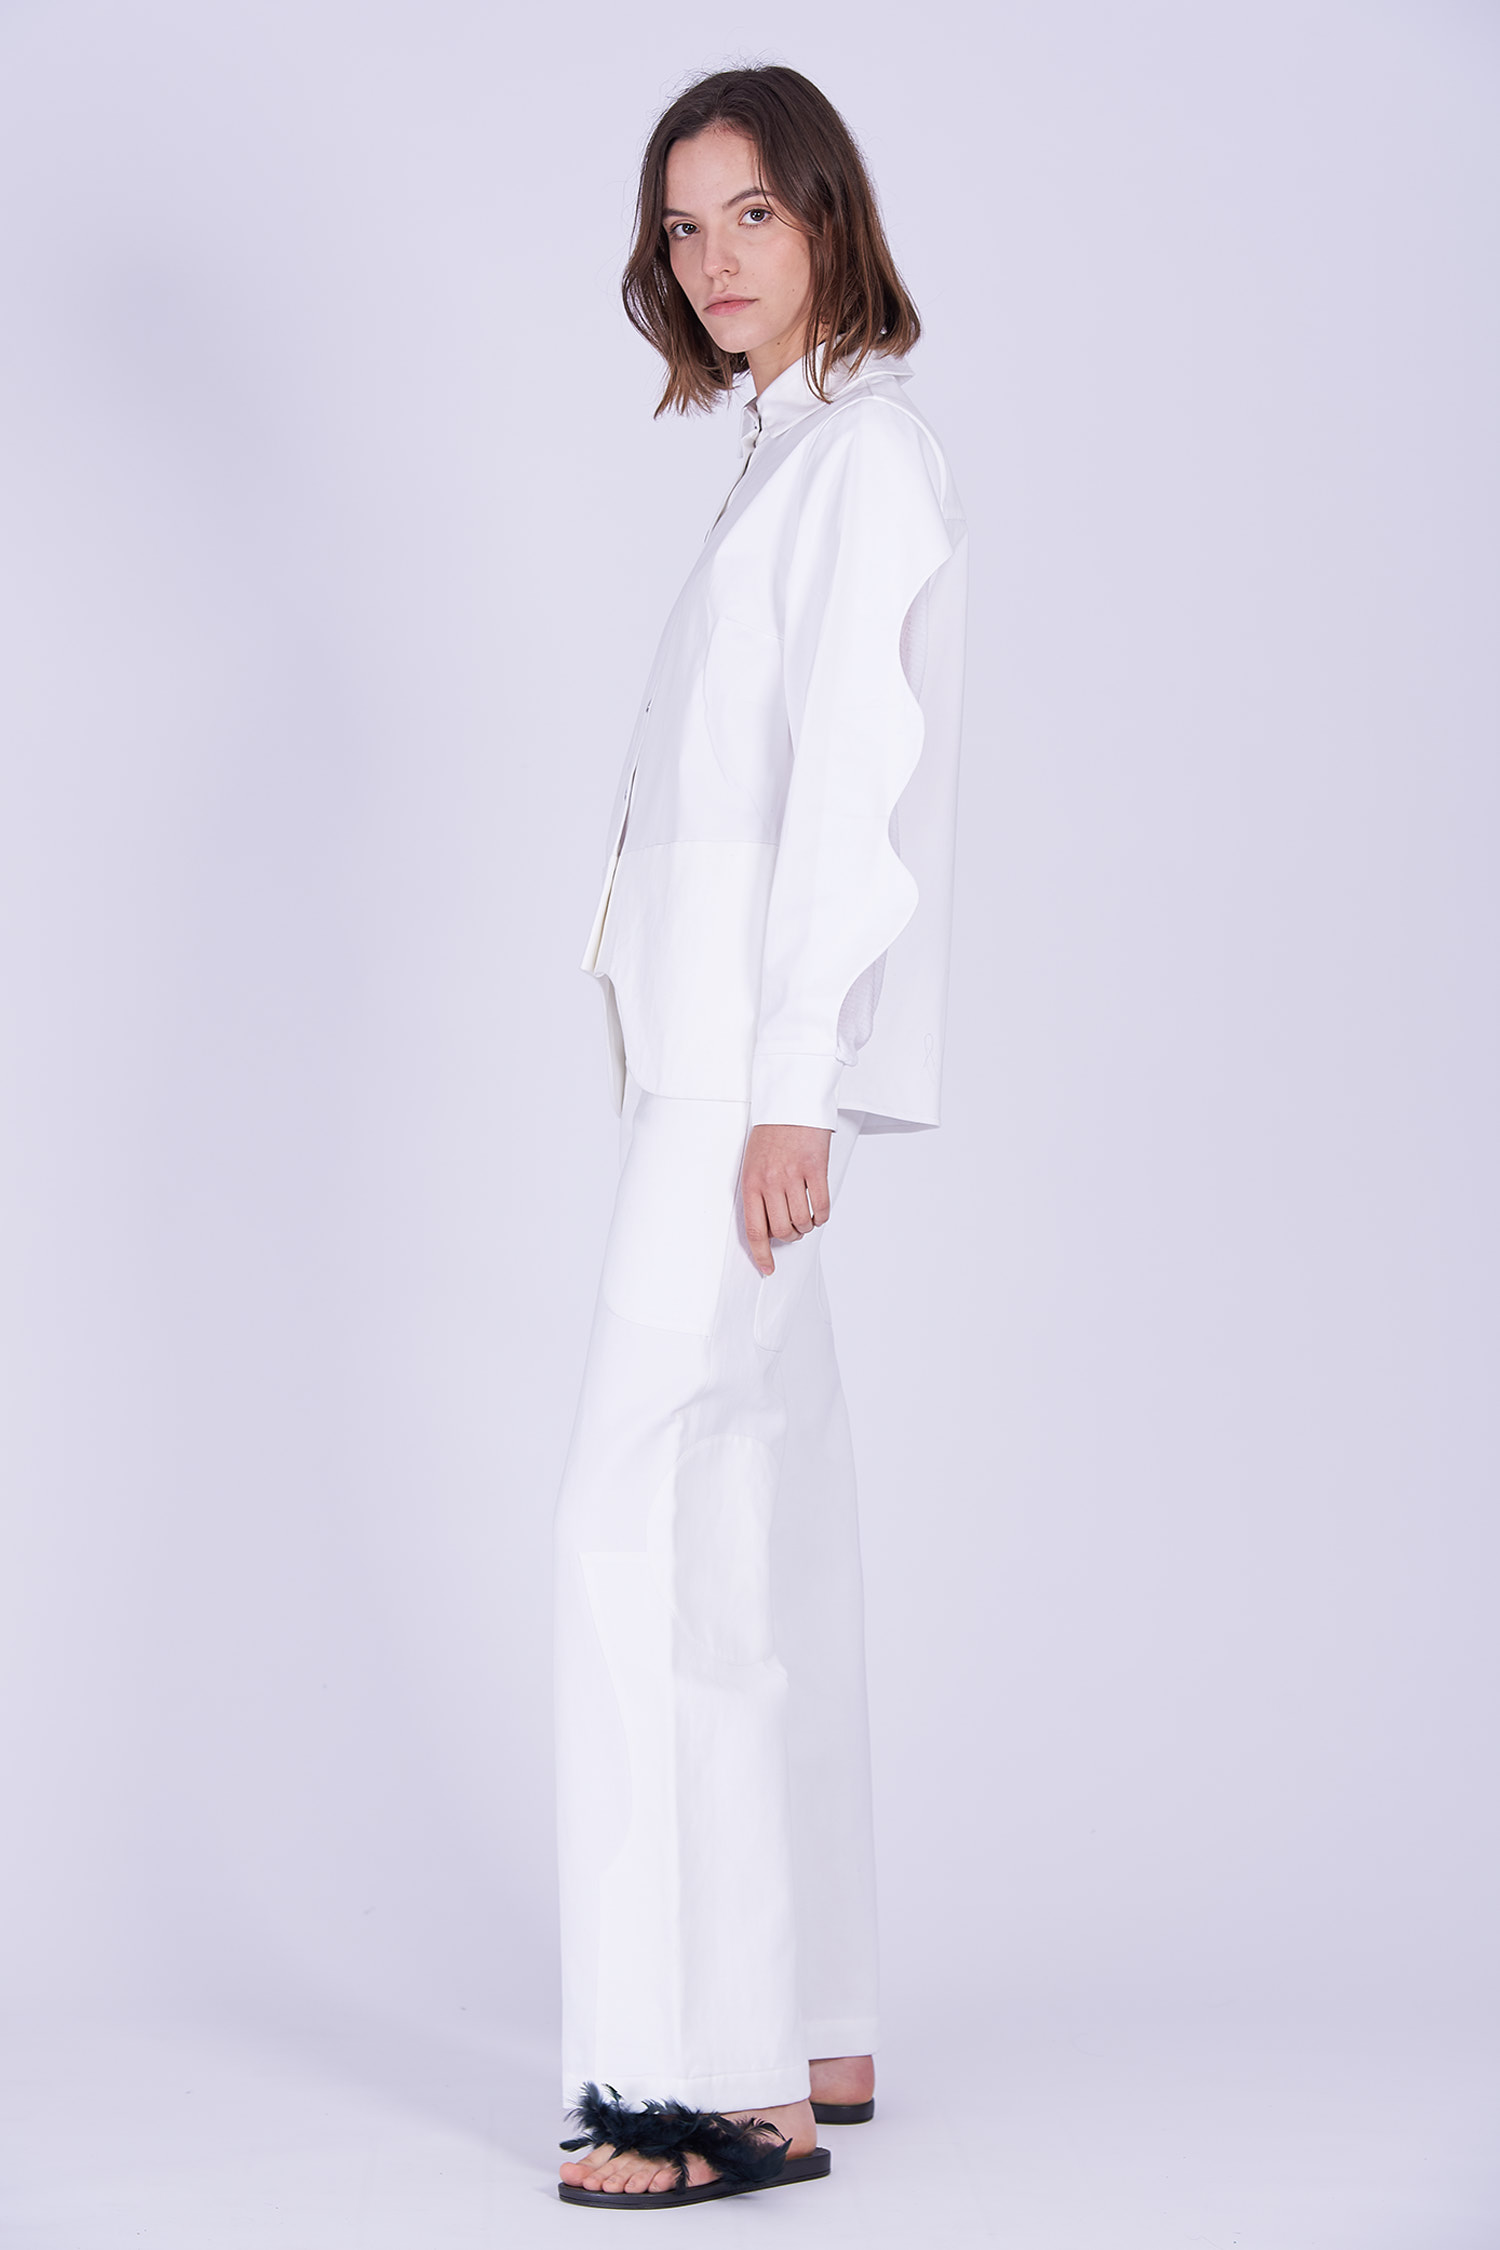 Acephala Ps2020 White Shirt White Trousers Side